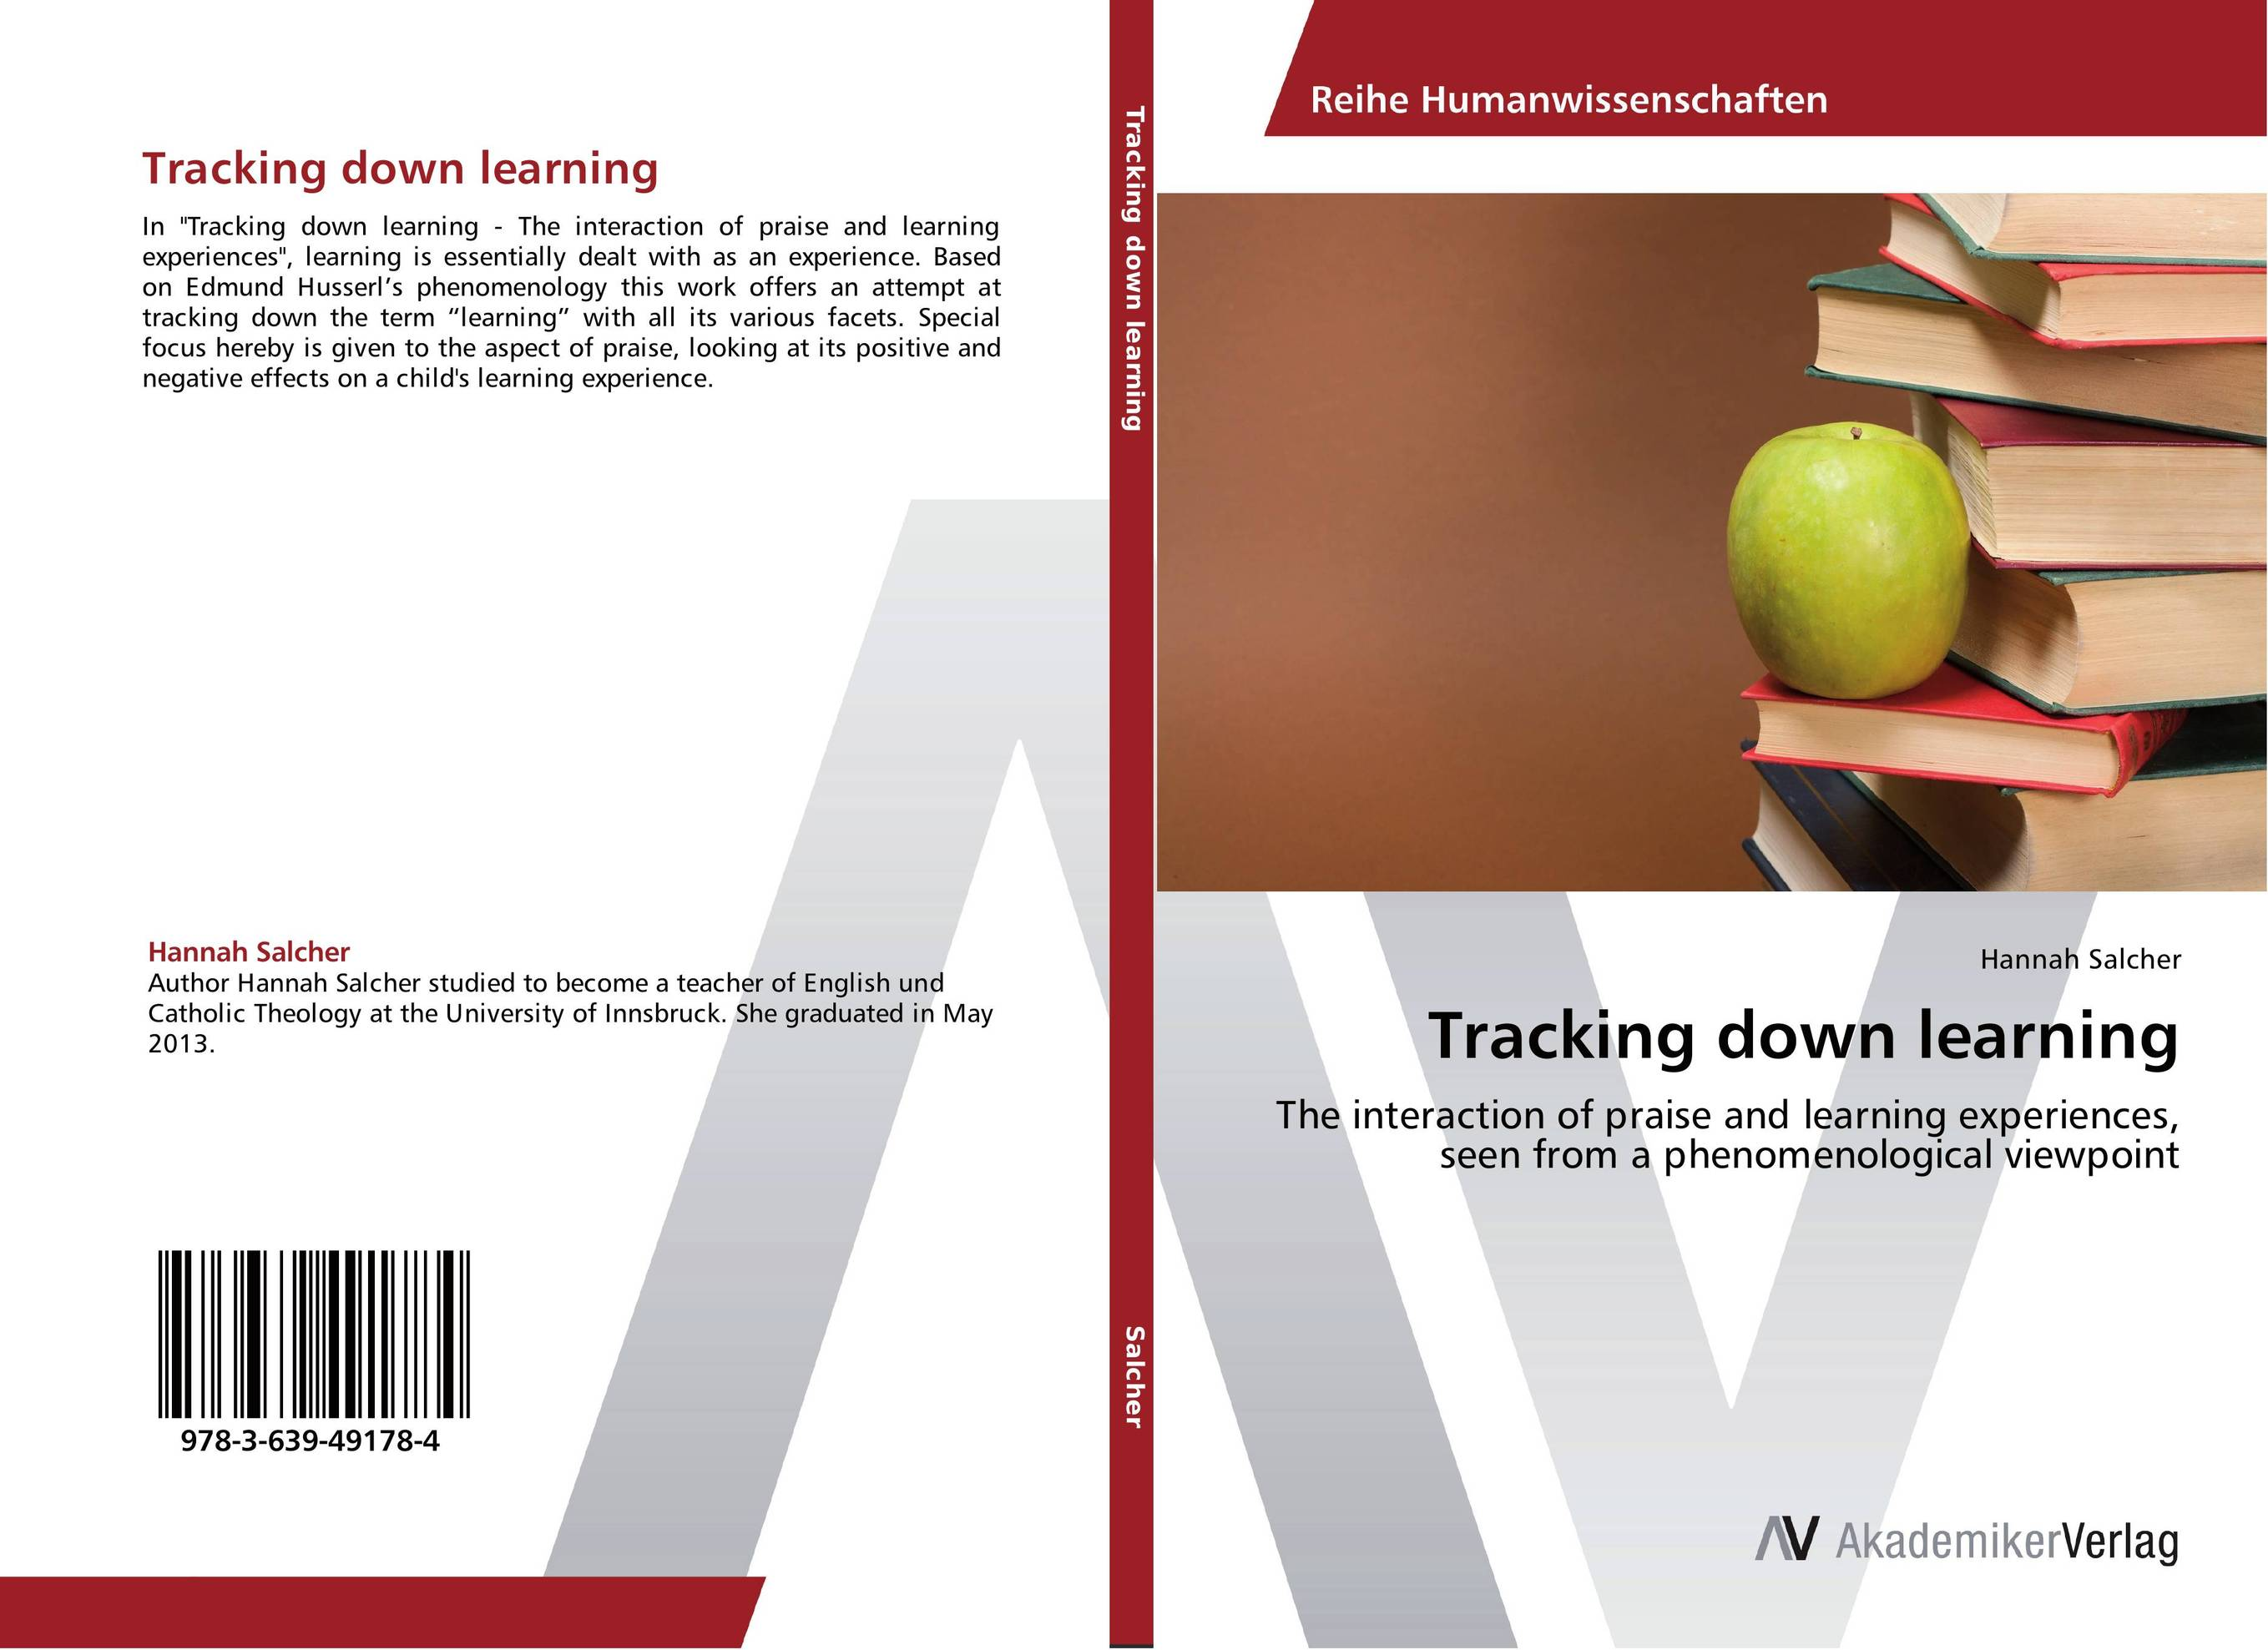 Tracking down learning pso based evolutionary learning